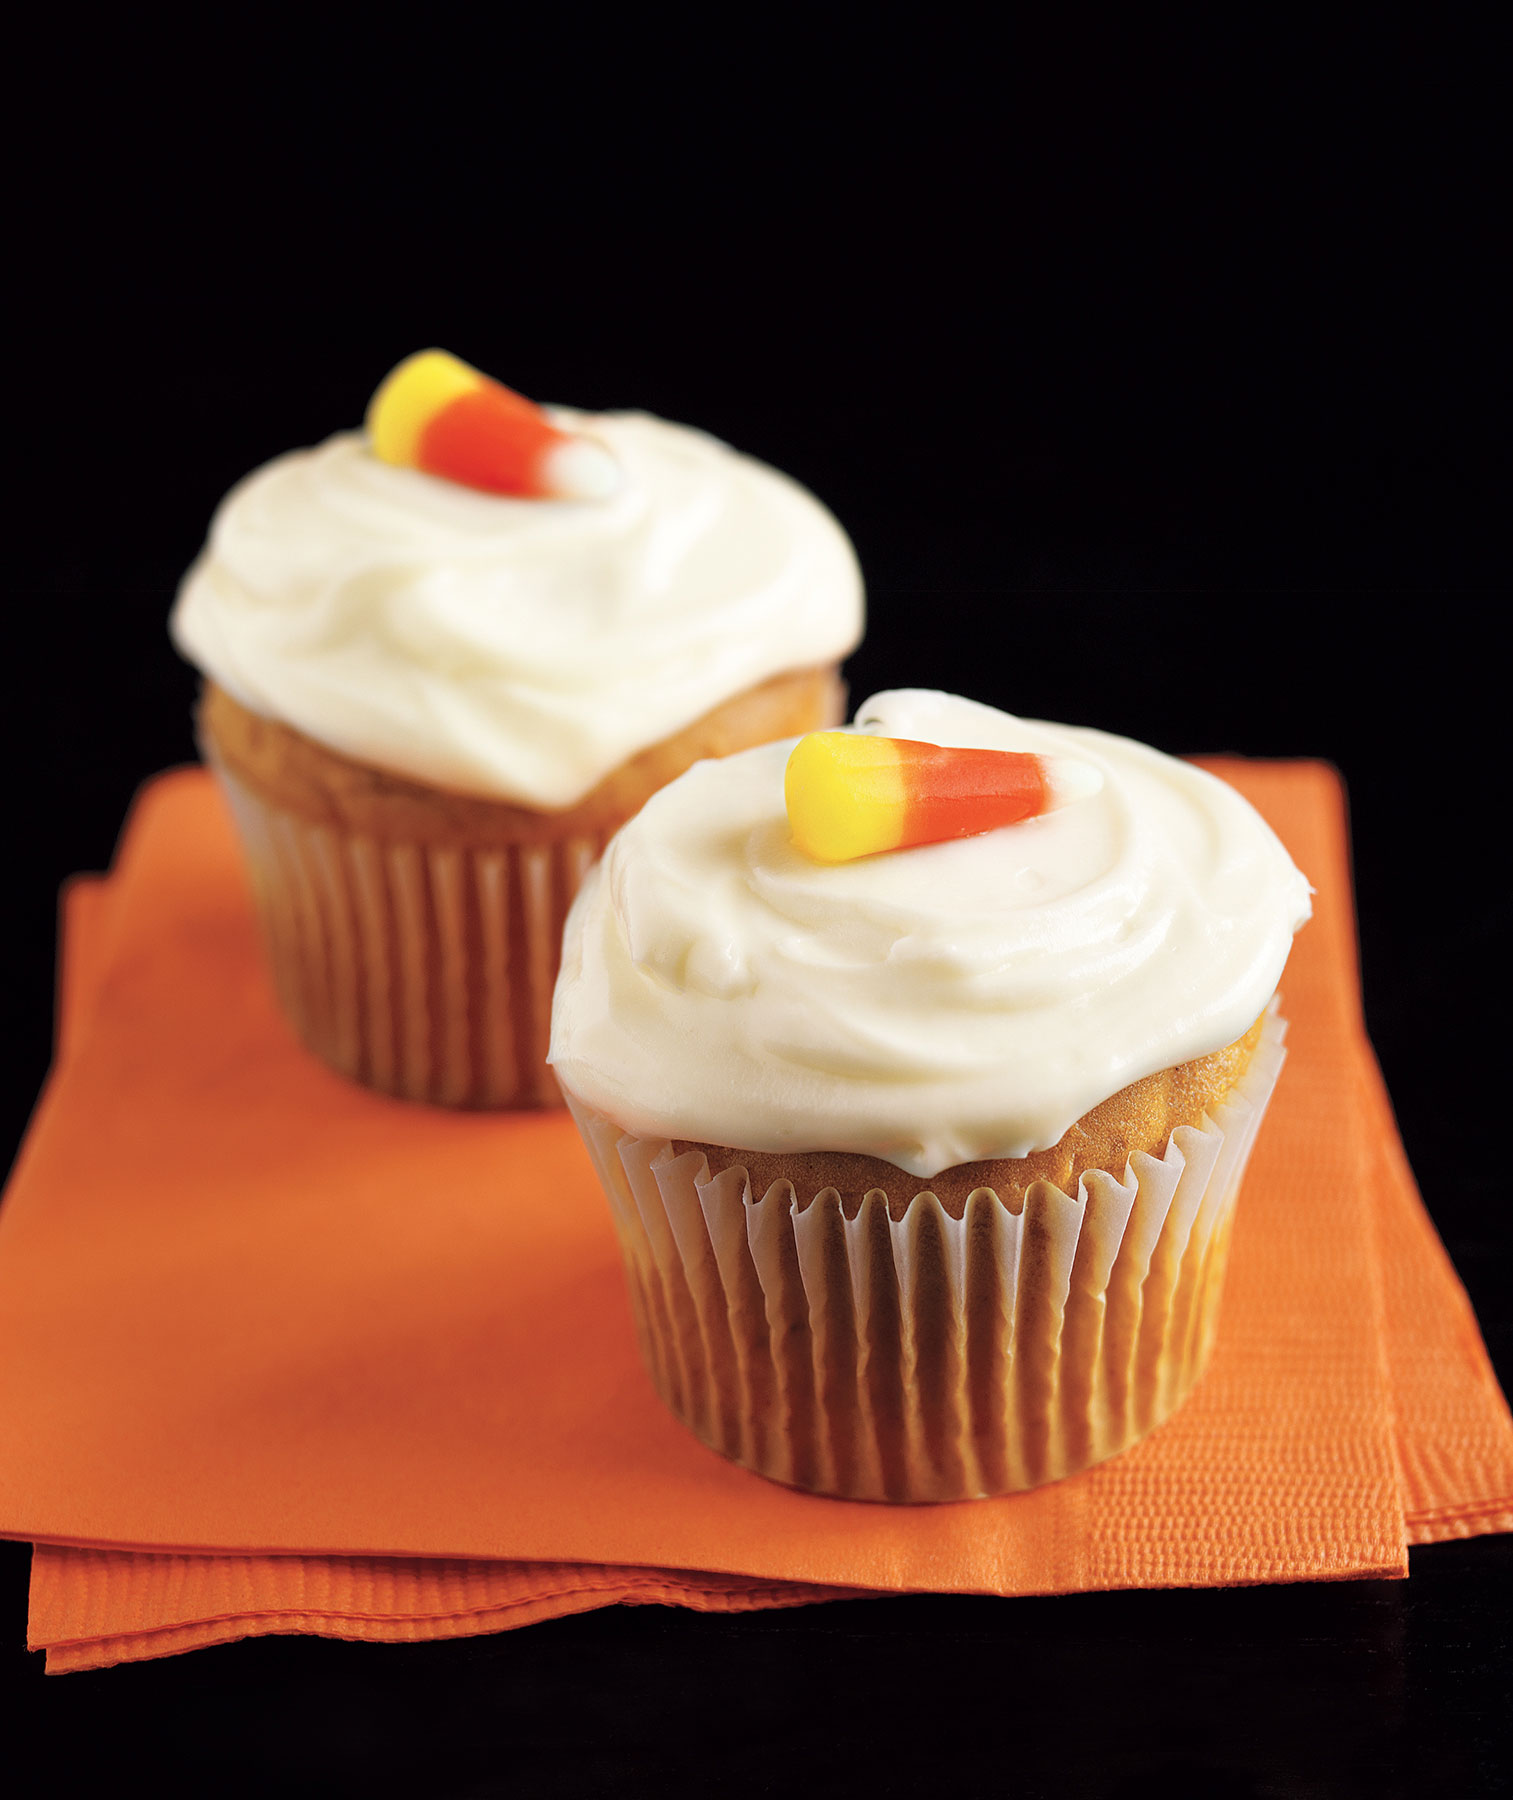 Halloween desserts and Halloween treats - Pumpkin Cupcakes With Cream Cheese Frosting